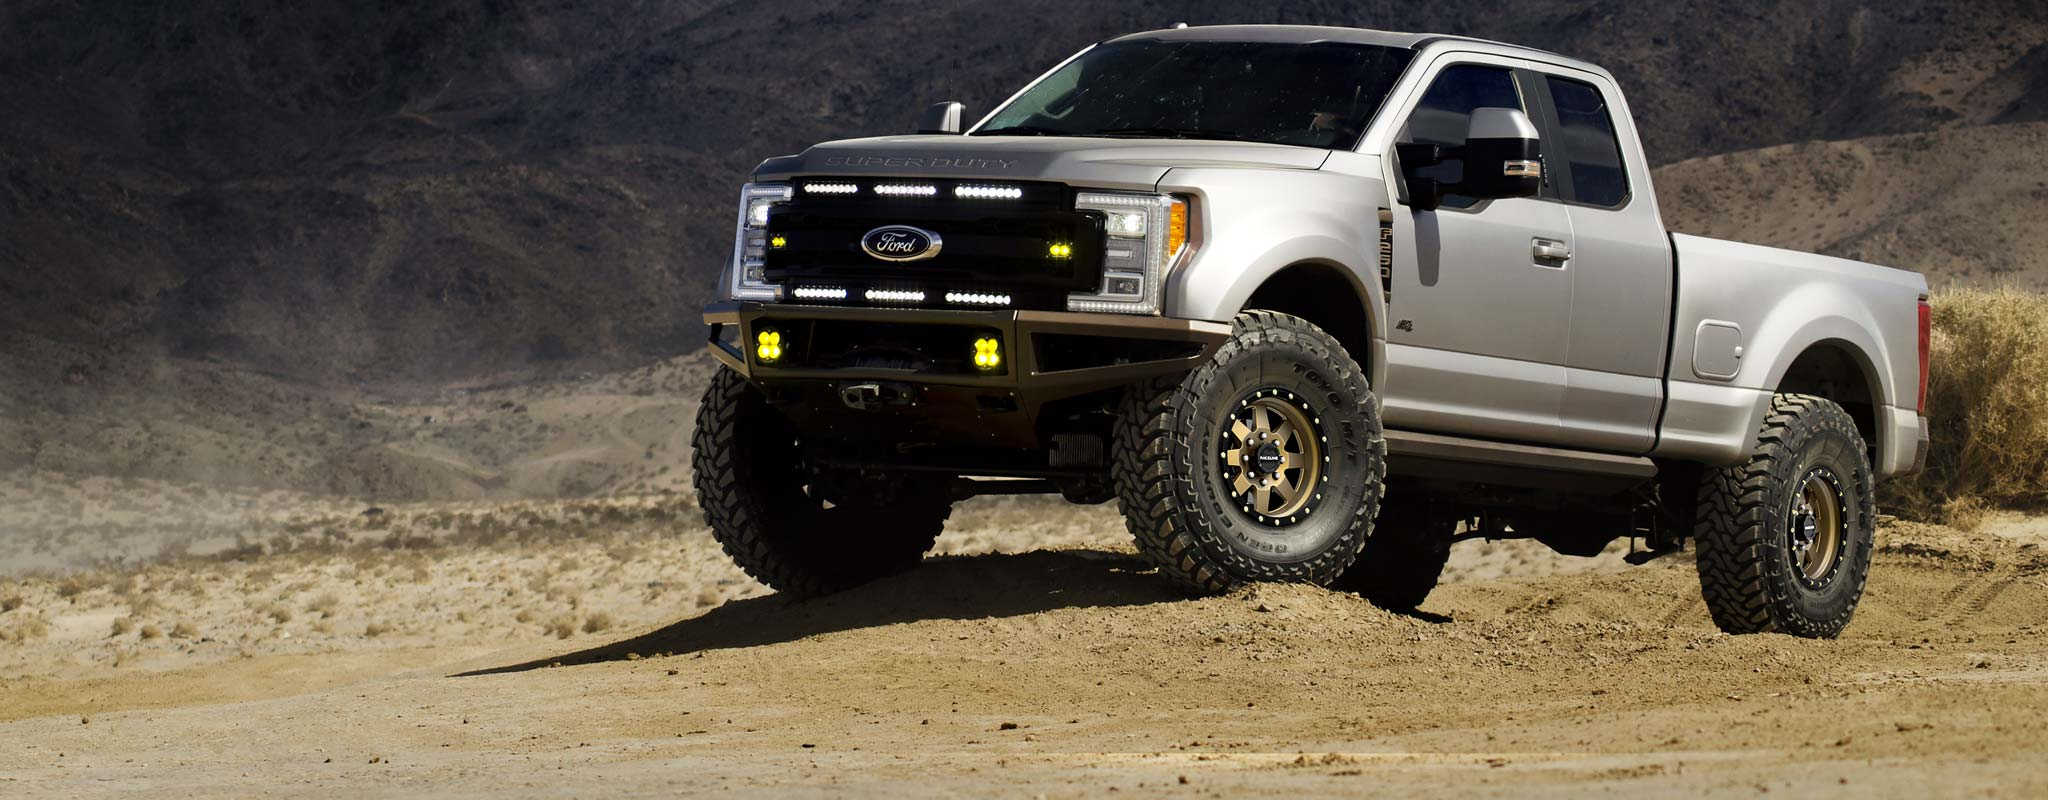 A Ford F-250 with custom wheels parked in the desert